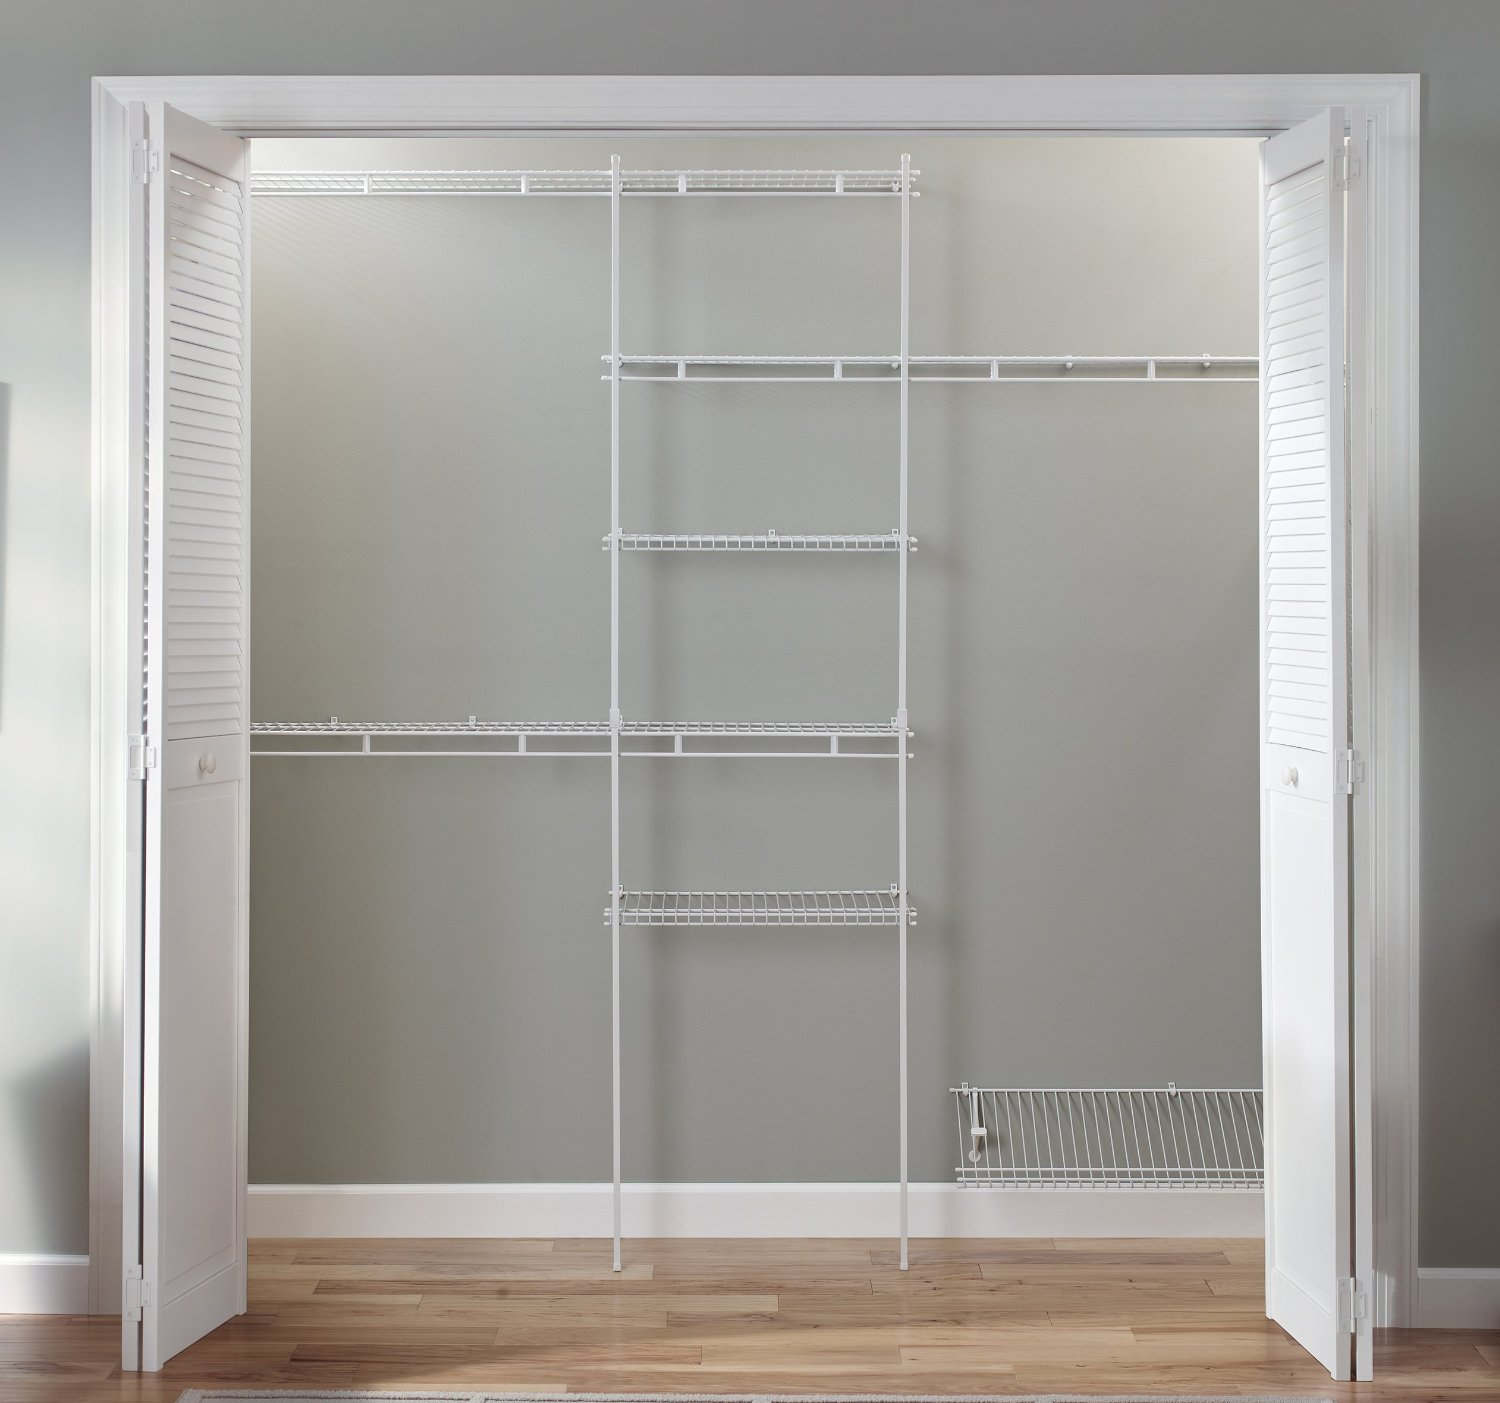 depot directions shelving as well plus heights closetmaid maid home closet